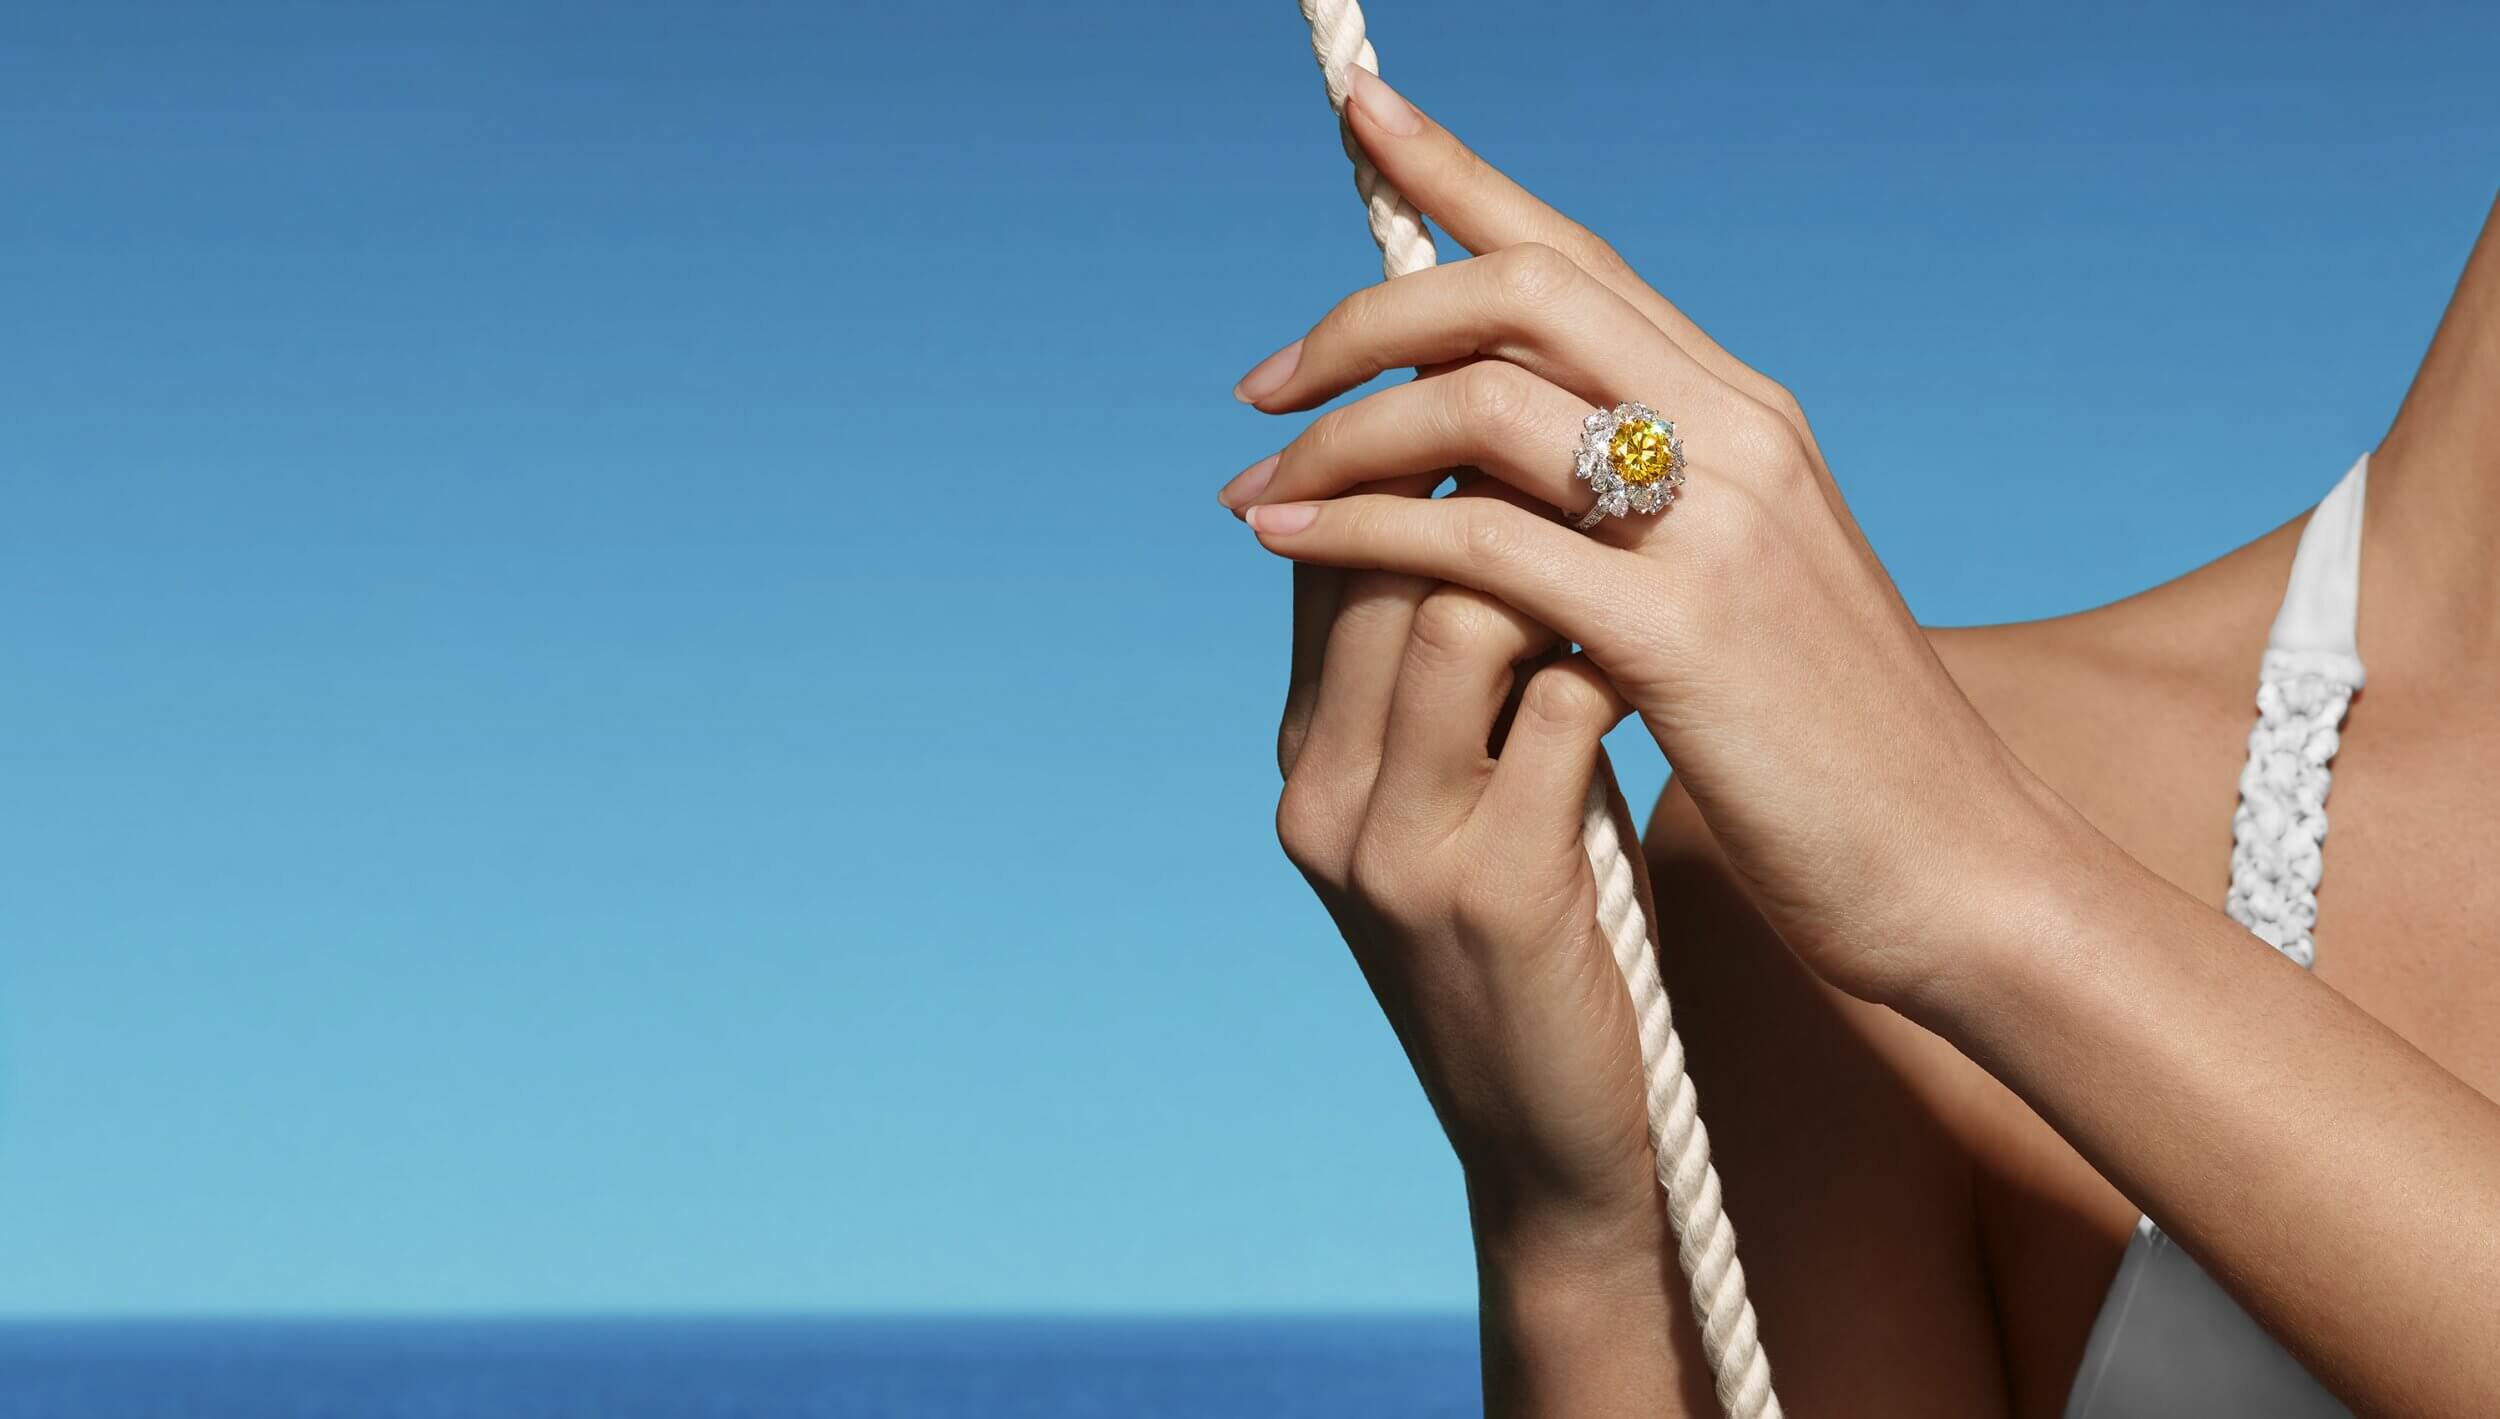 A lady on a boat wearing a yellow diamond ring from the Graff high jewellery collection